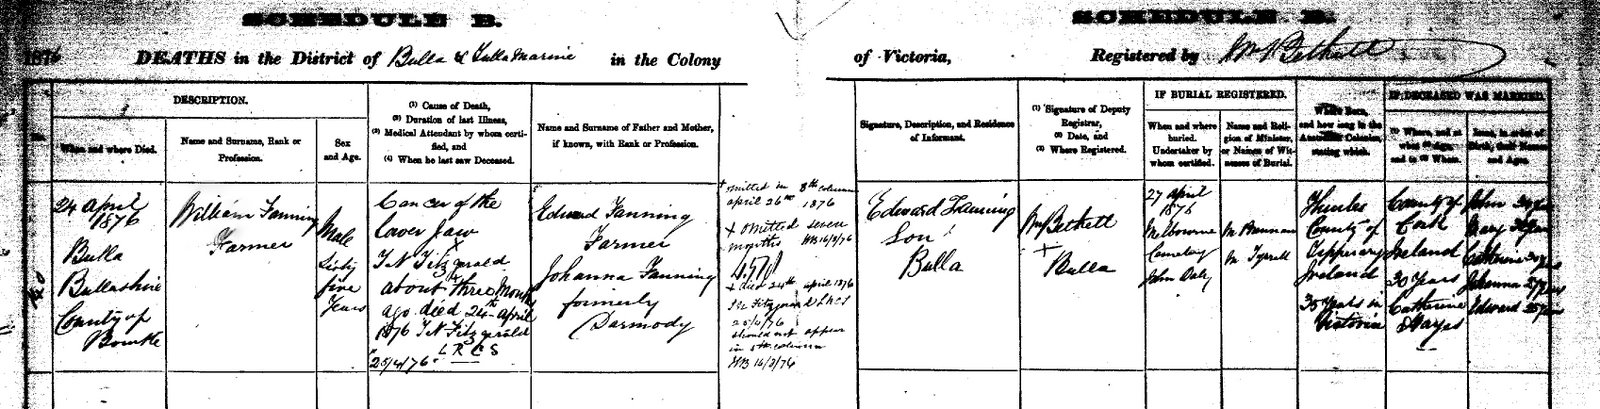 William Patrick Fanning Death certificate 1876.bmp